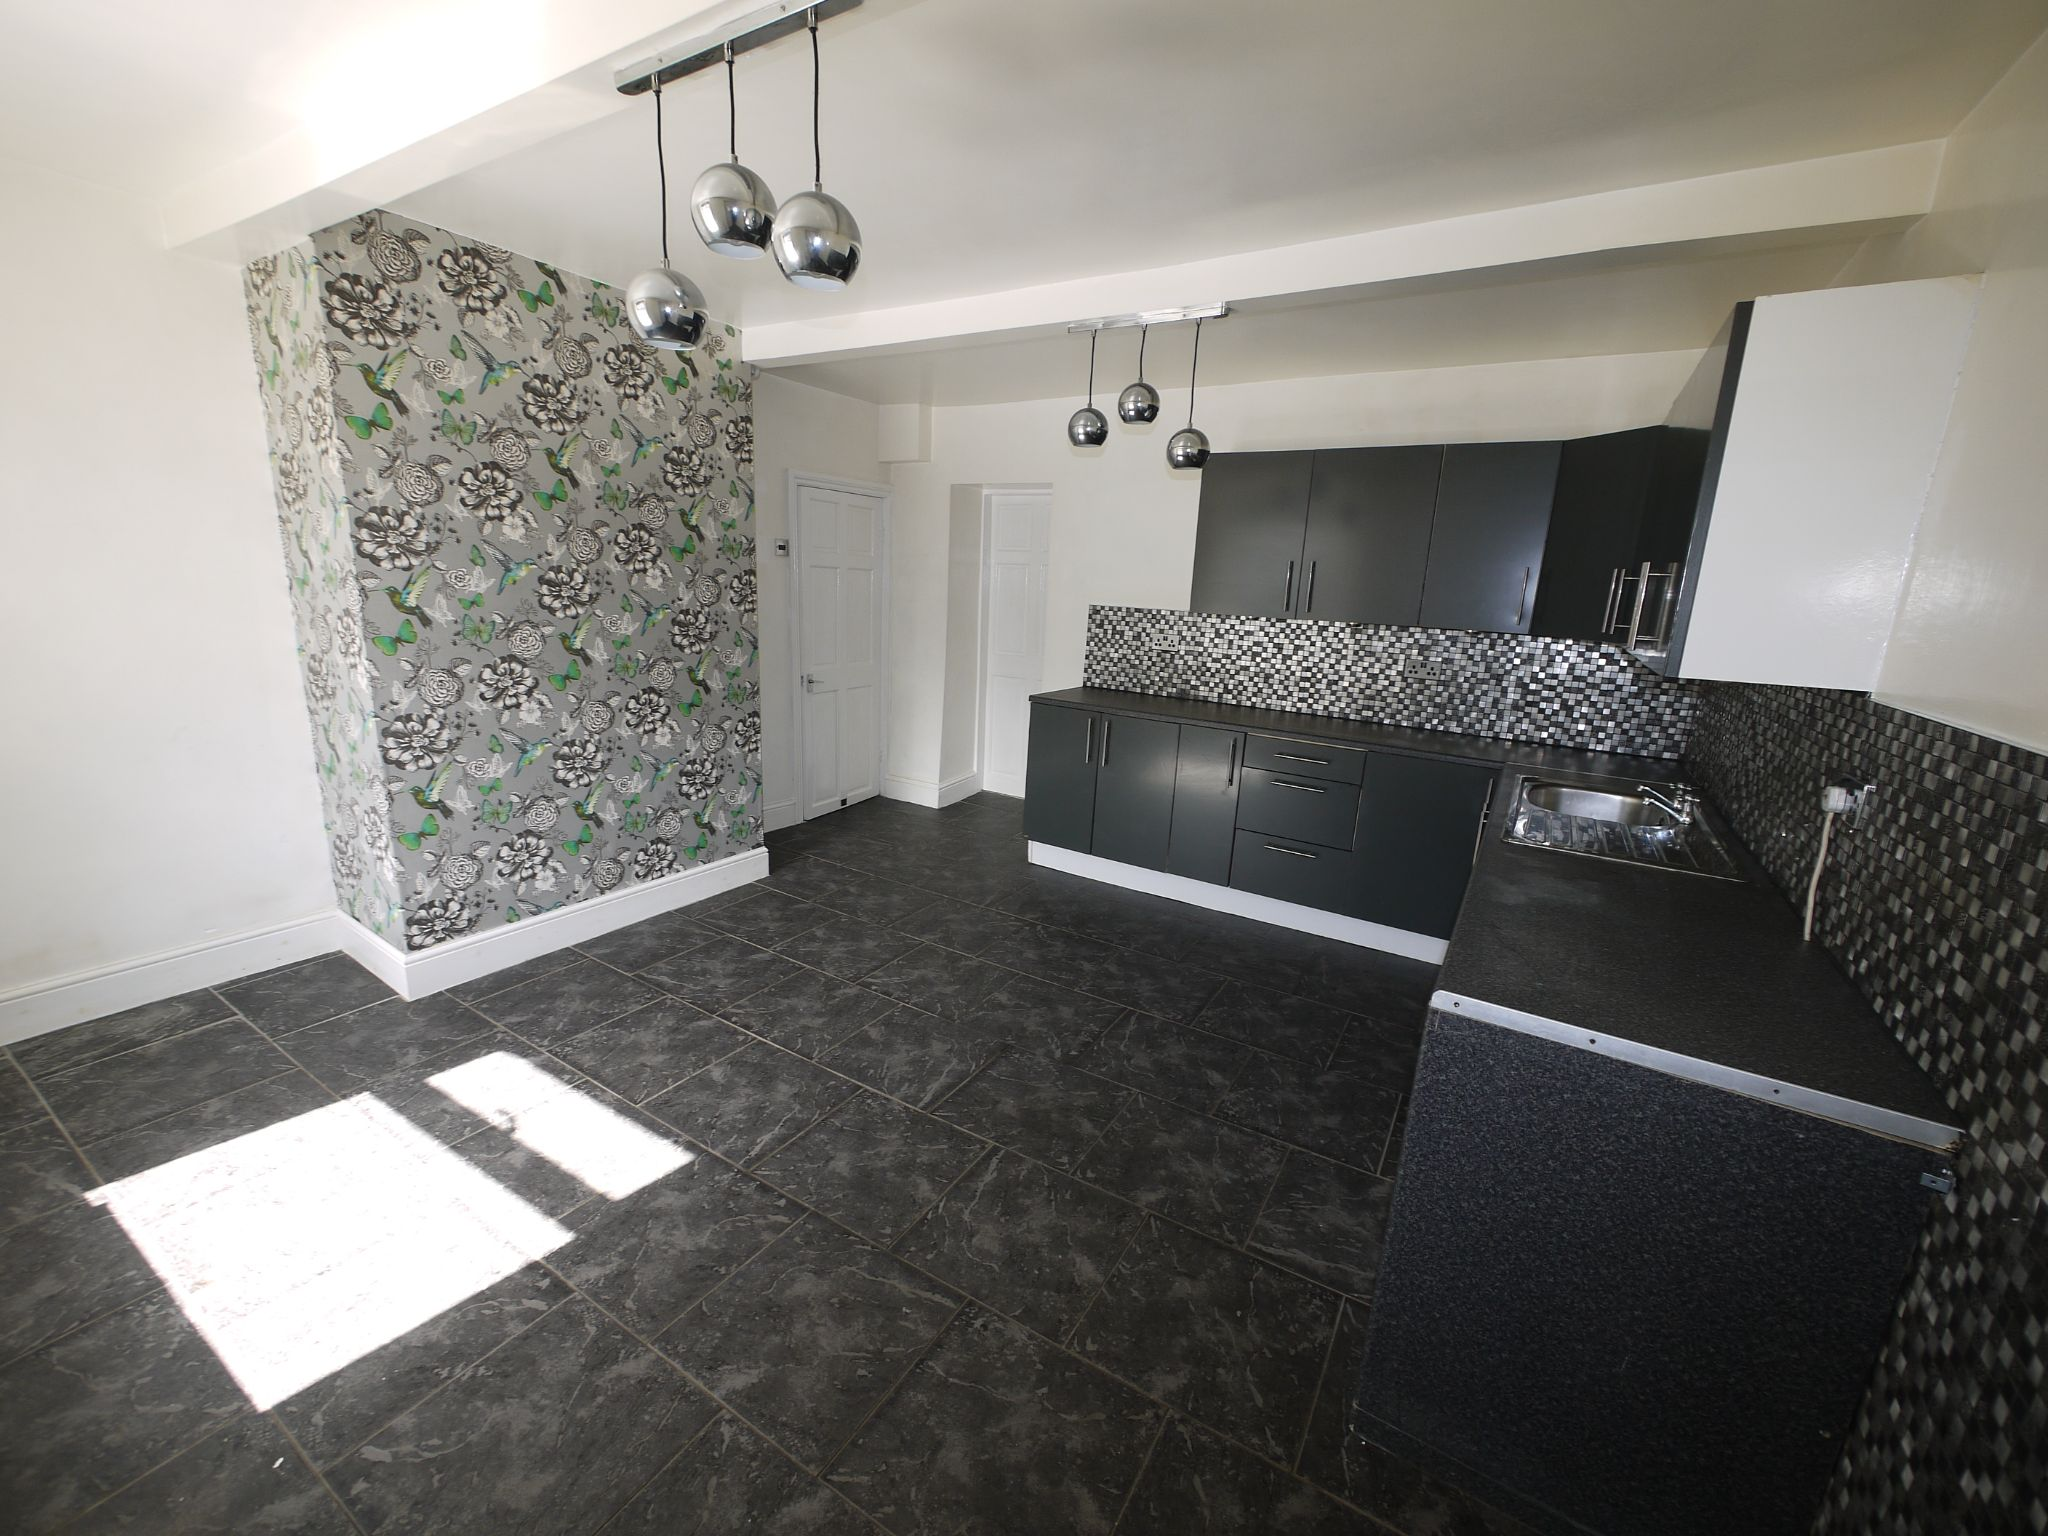 3 bedroom detached house For Sale in Brighouse - Dining Kitchen.